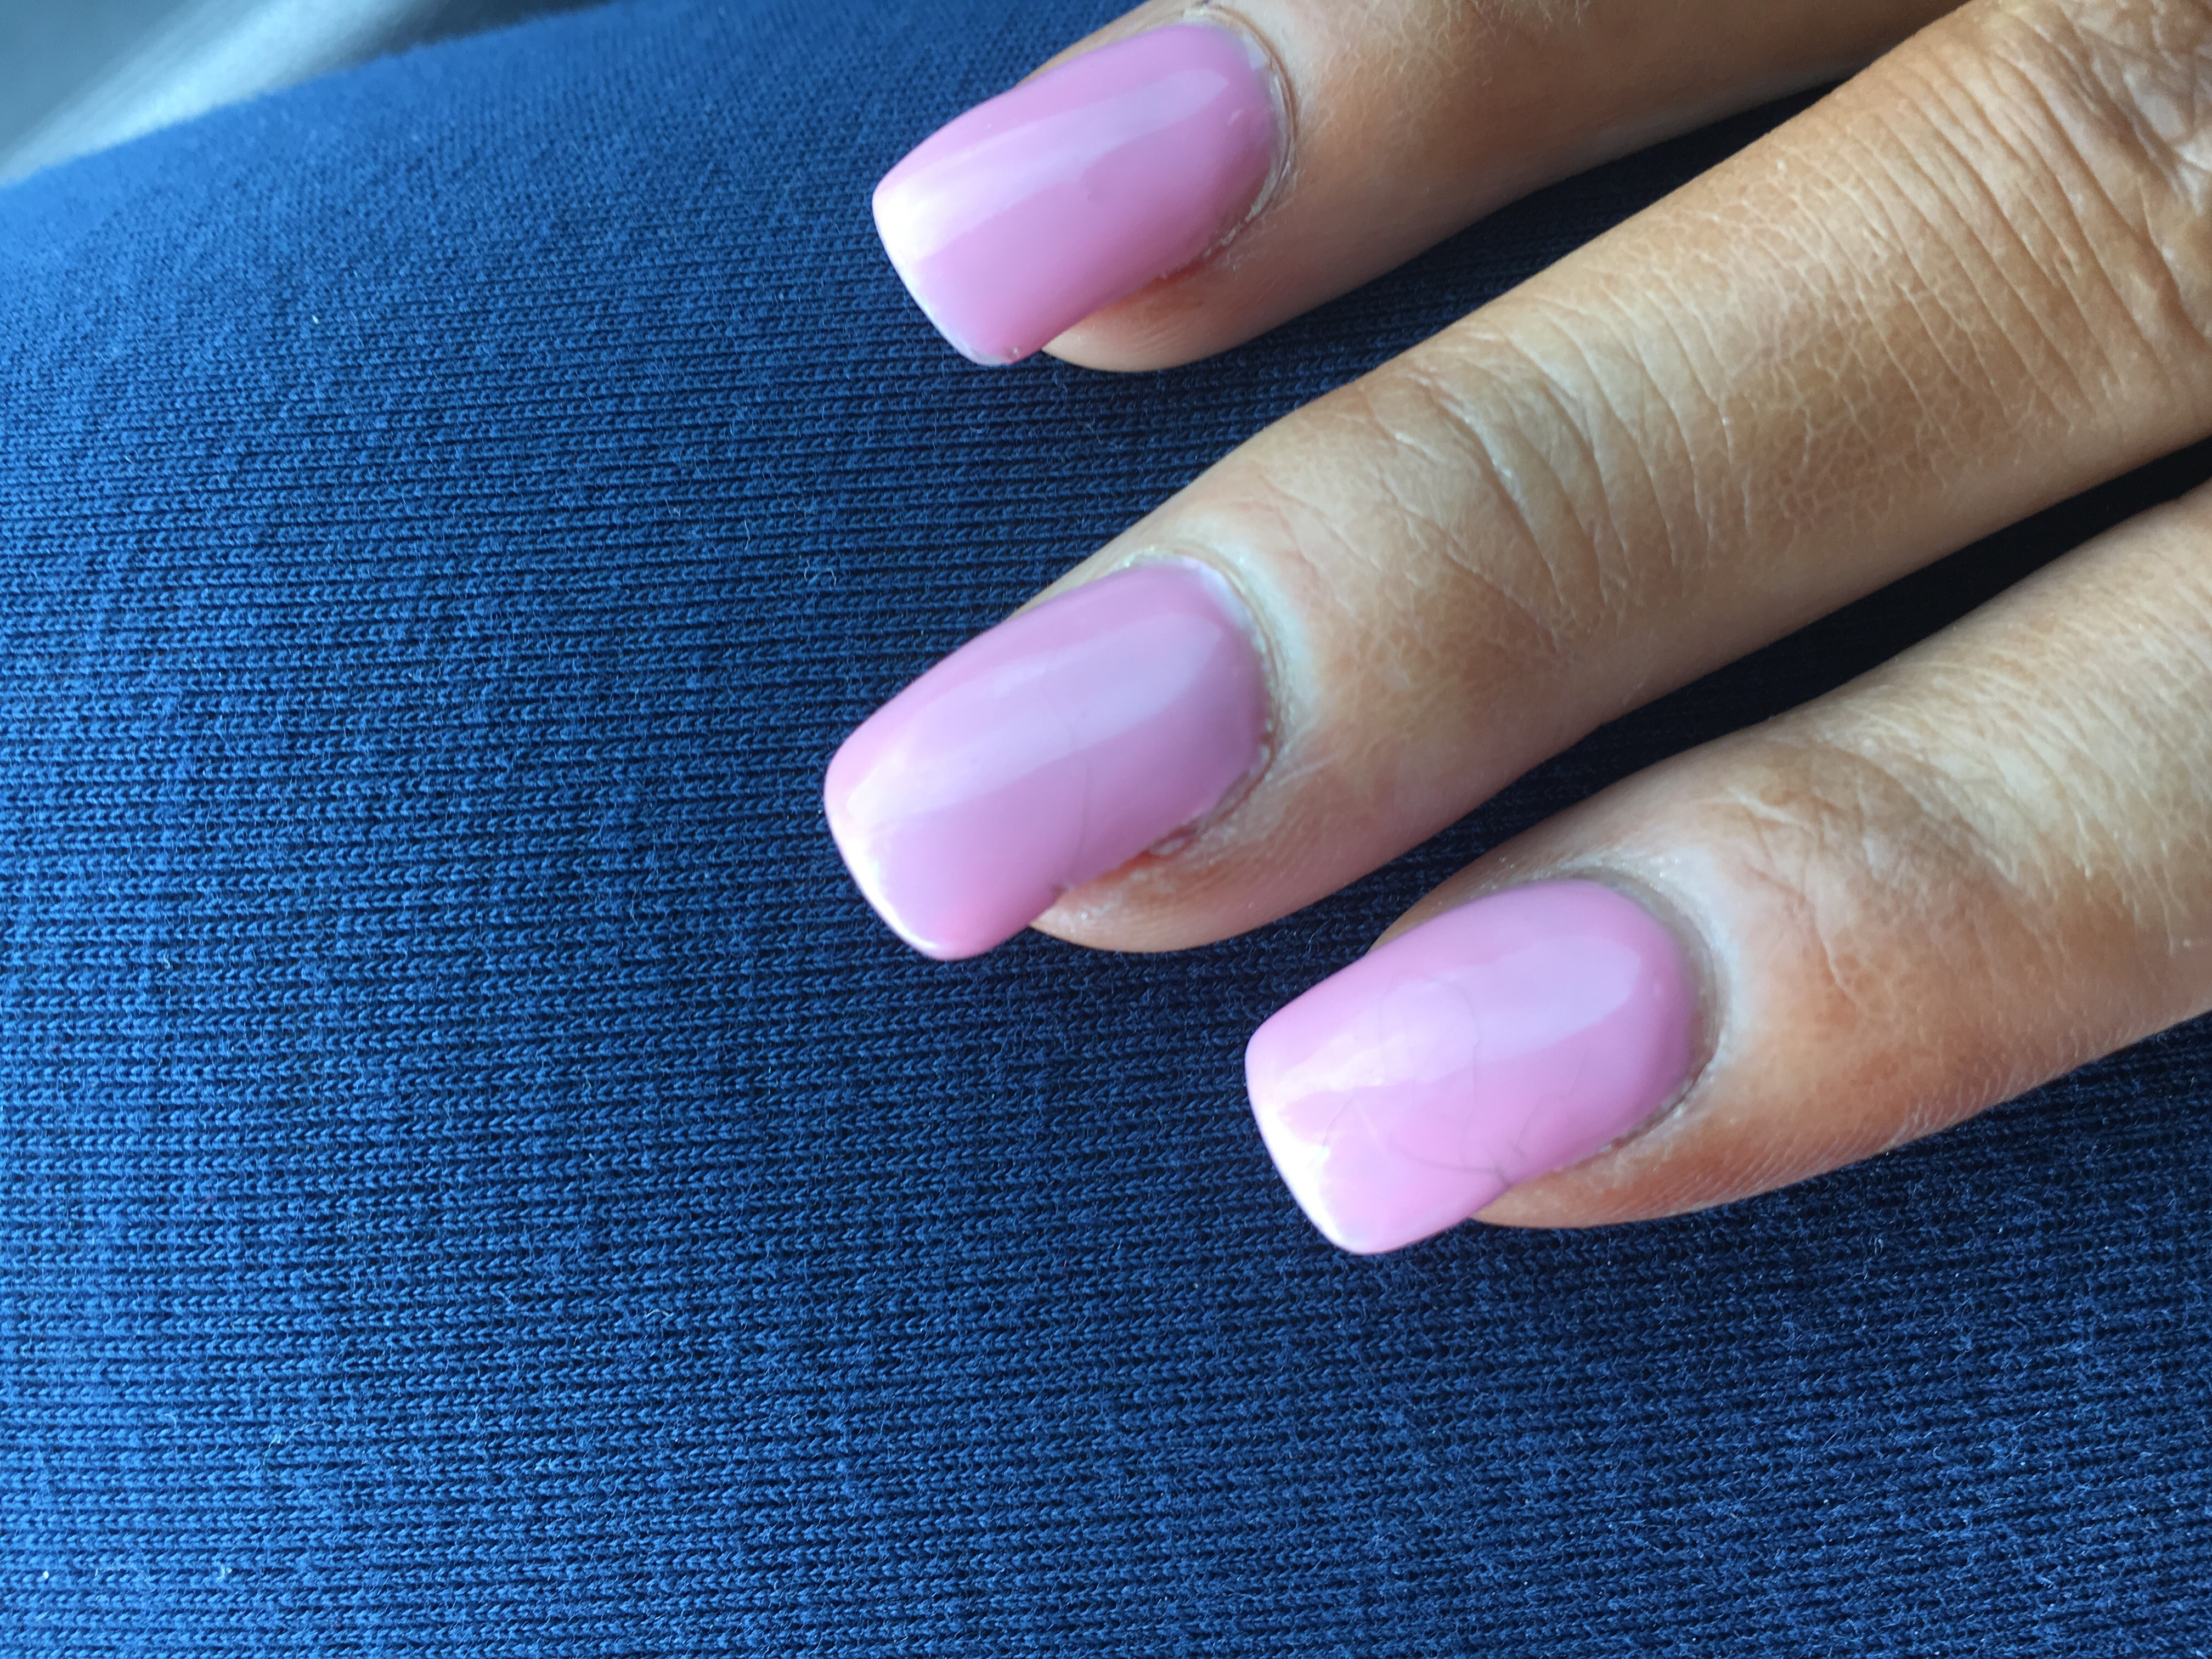 Vivi\'s Nails 9311 Coors Blvd NW Ste 23, Albuquerque, NM 87114 - YP.com